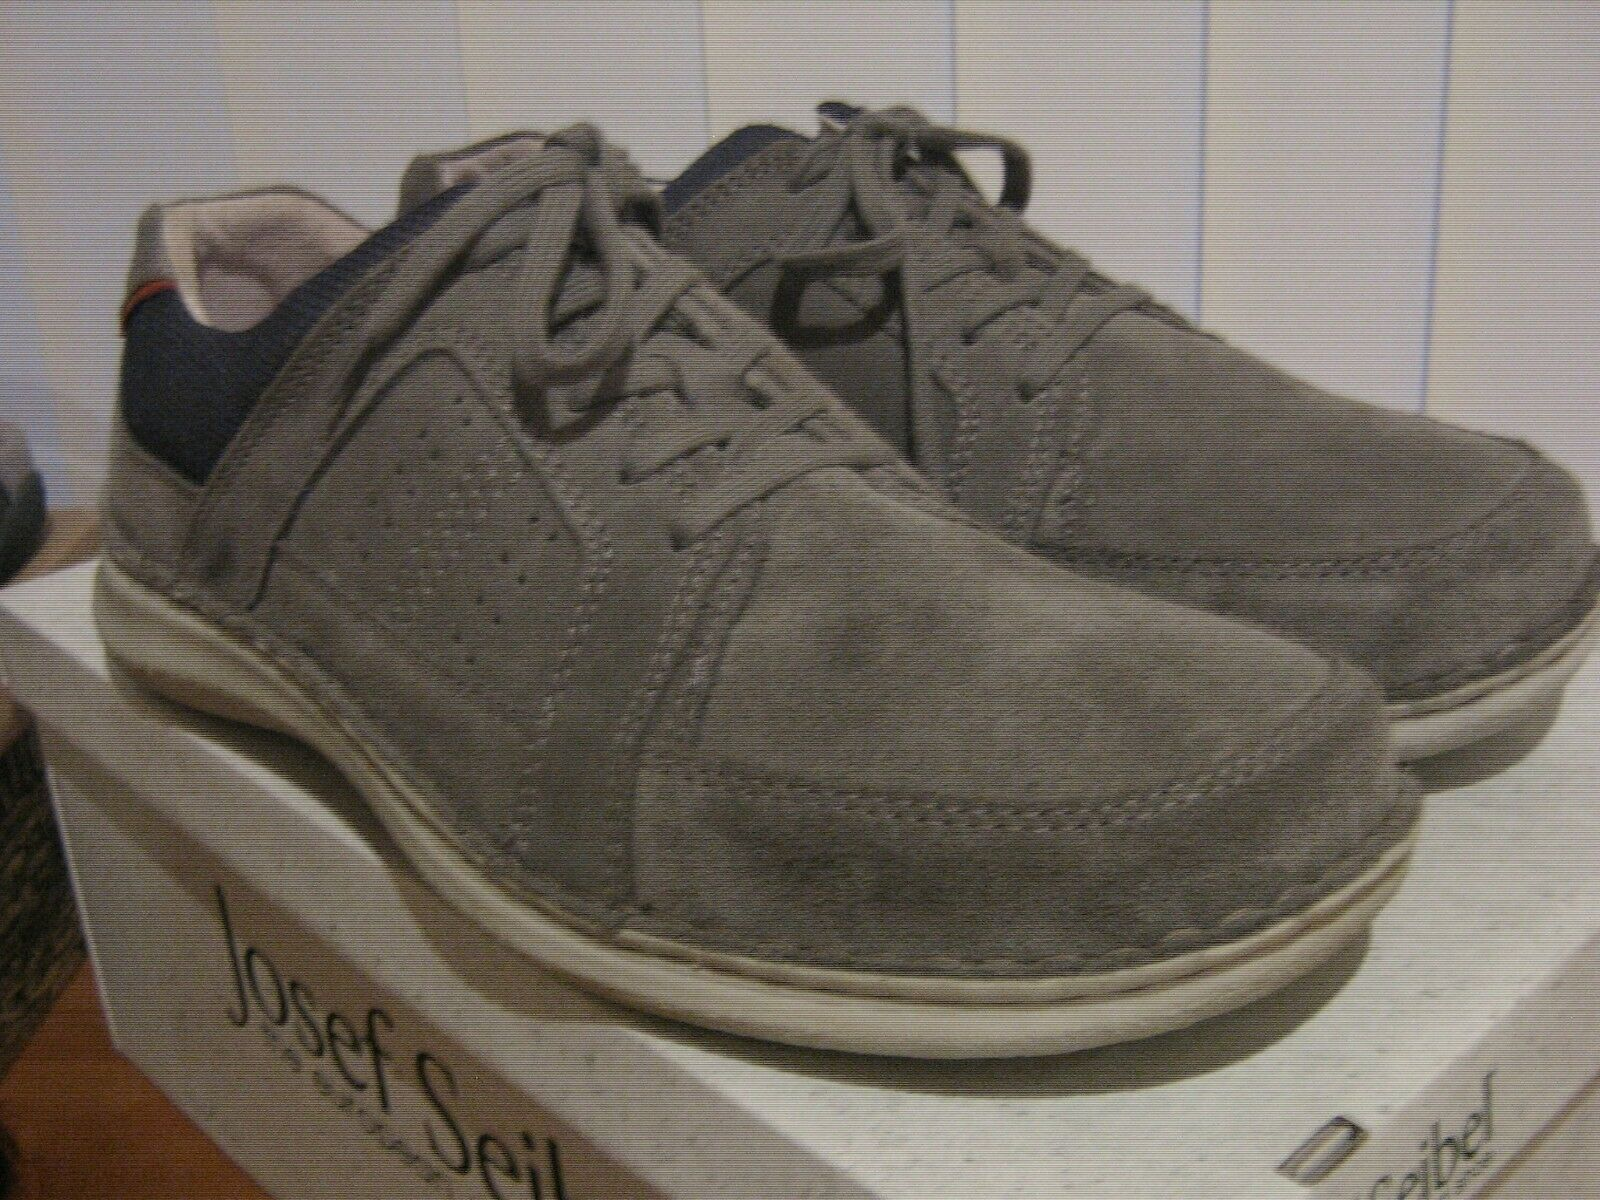 Josef Seibel Anvers 41 grau Suede Leather Lace Up Casual schuhe Extra Wide SALE